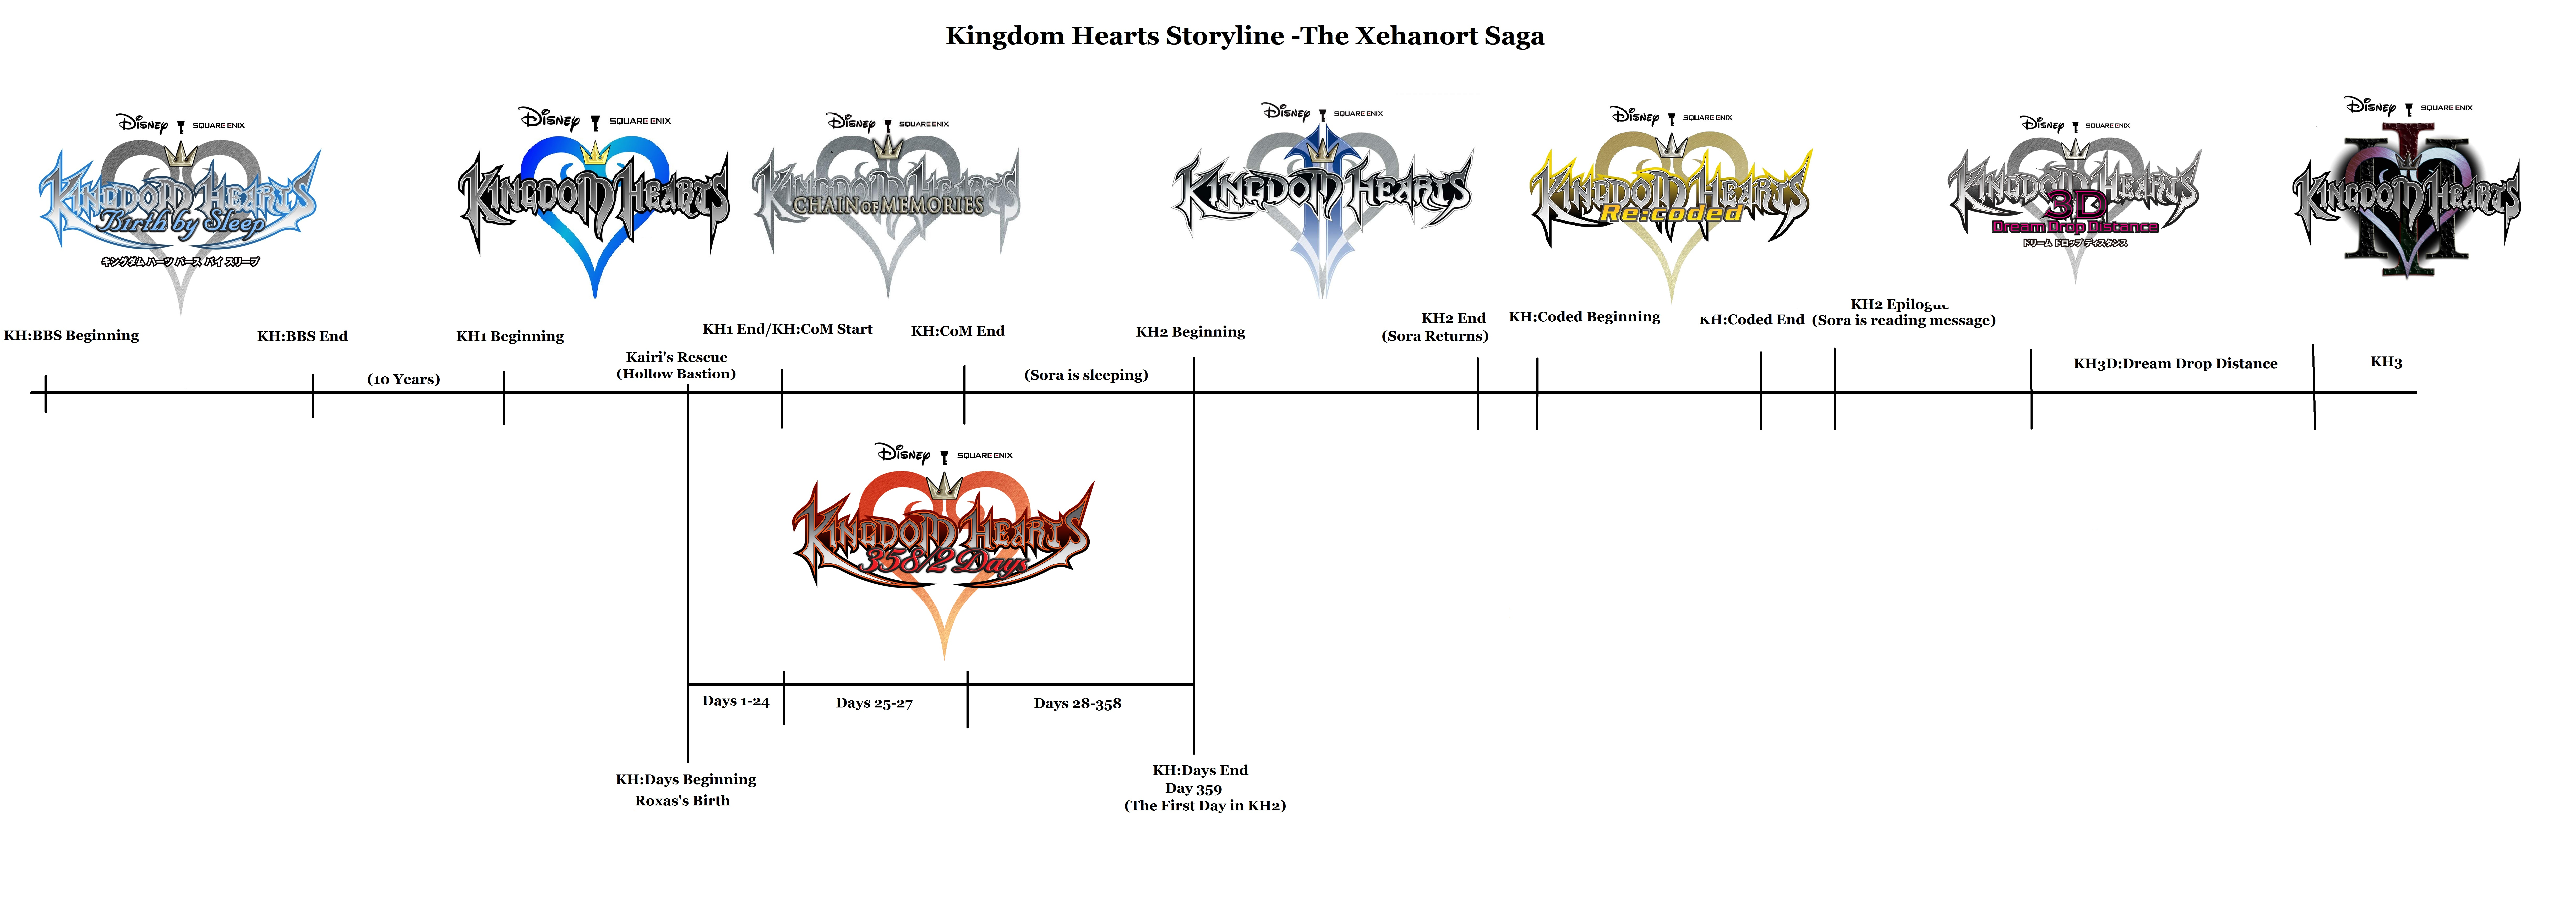 Kingdom Hearts 3 May Come To The Pc Square Enix Will Consider Other Ps4 Kingdoms Heart 15 25 Remix Region There You Go Better One Spoiler Heavy